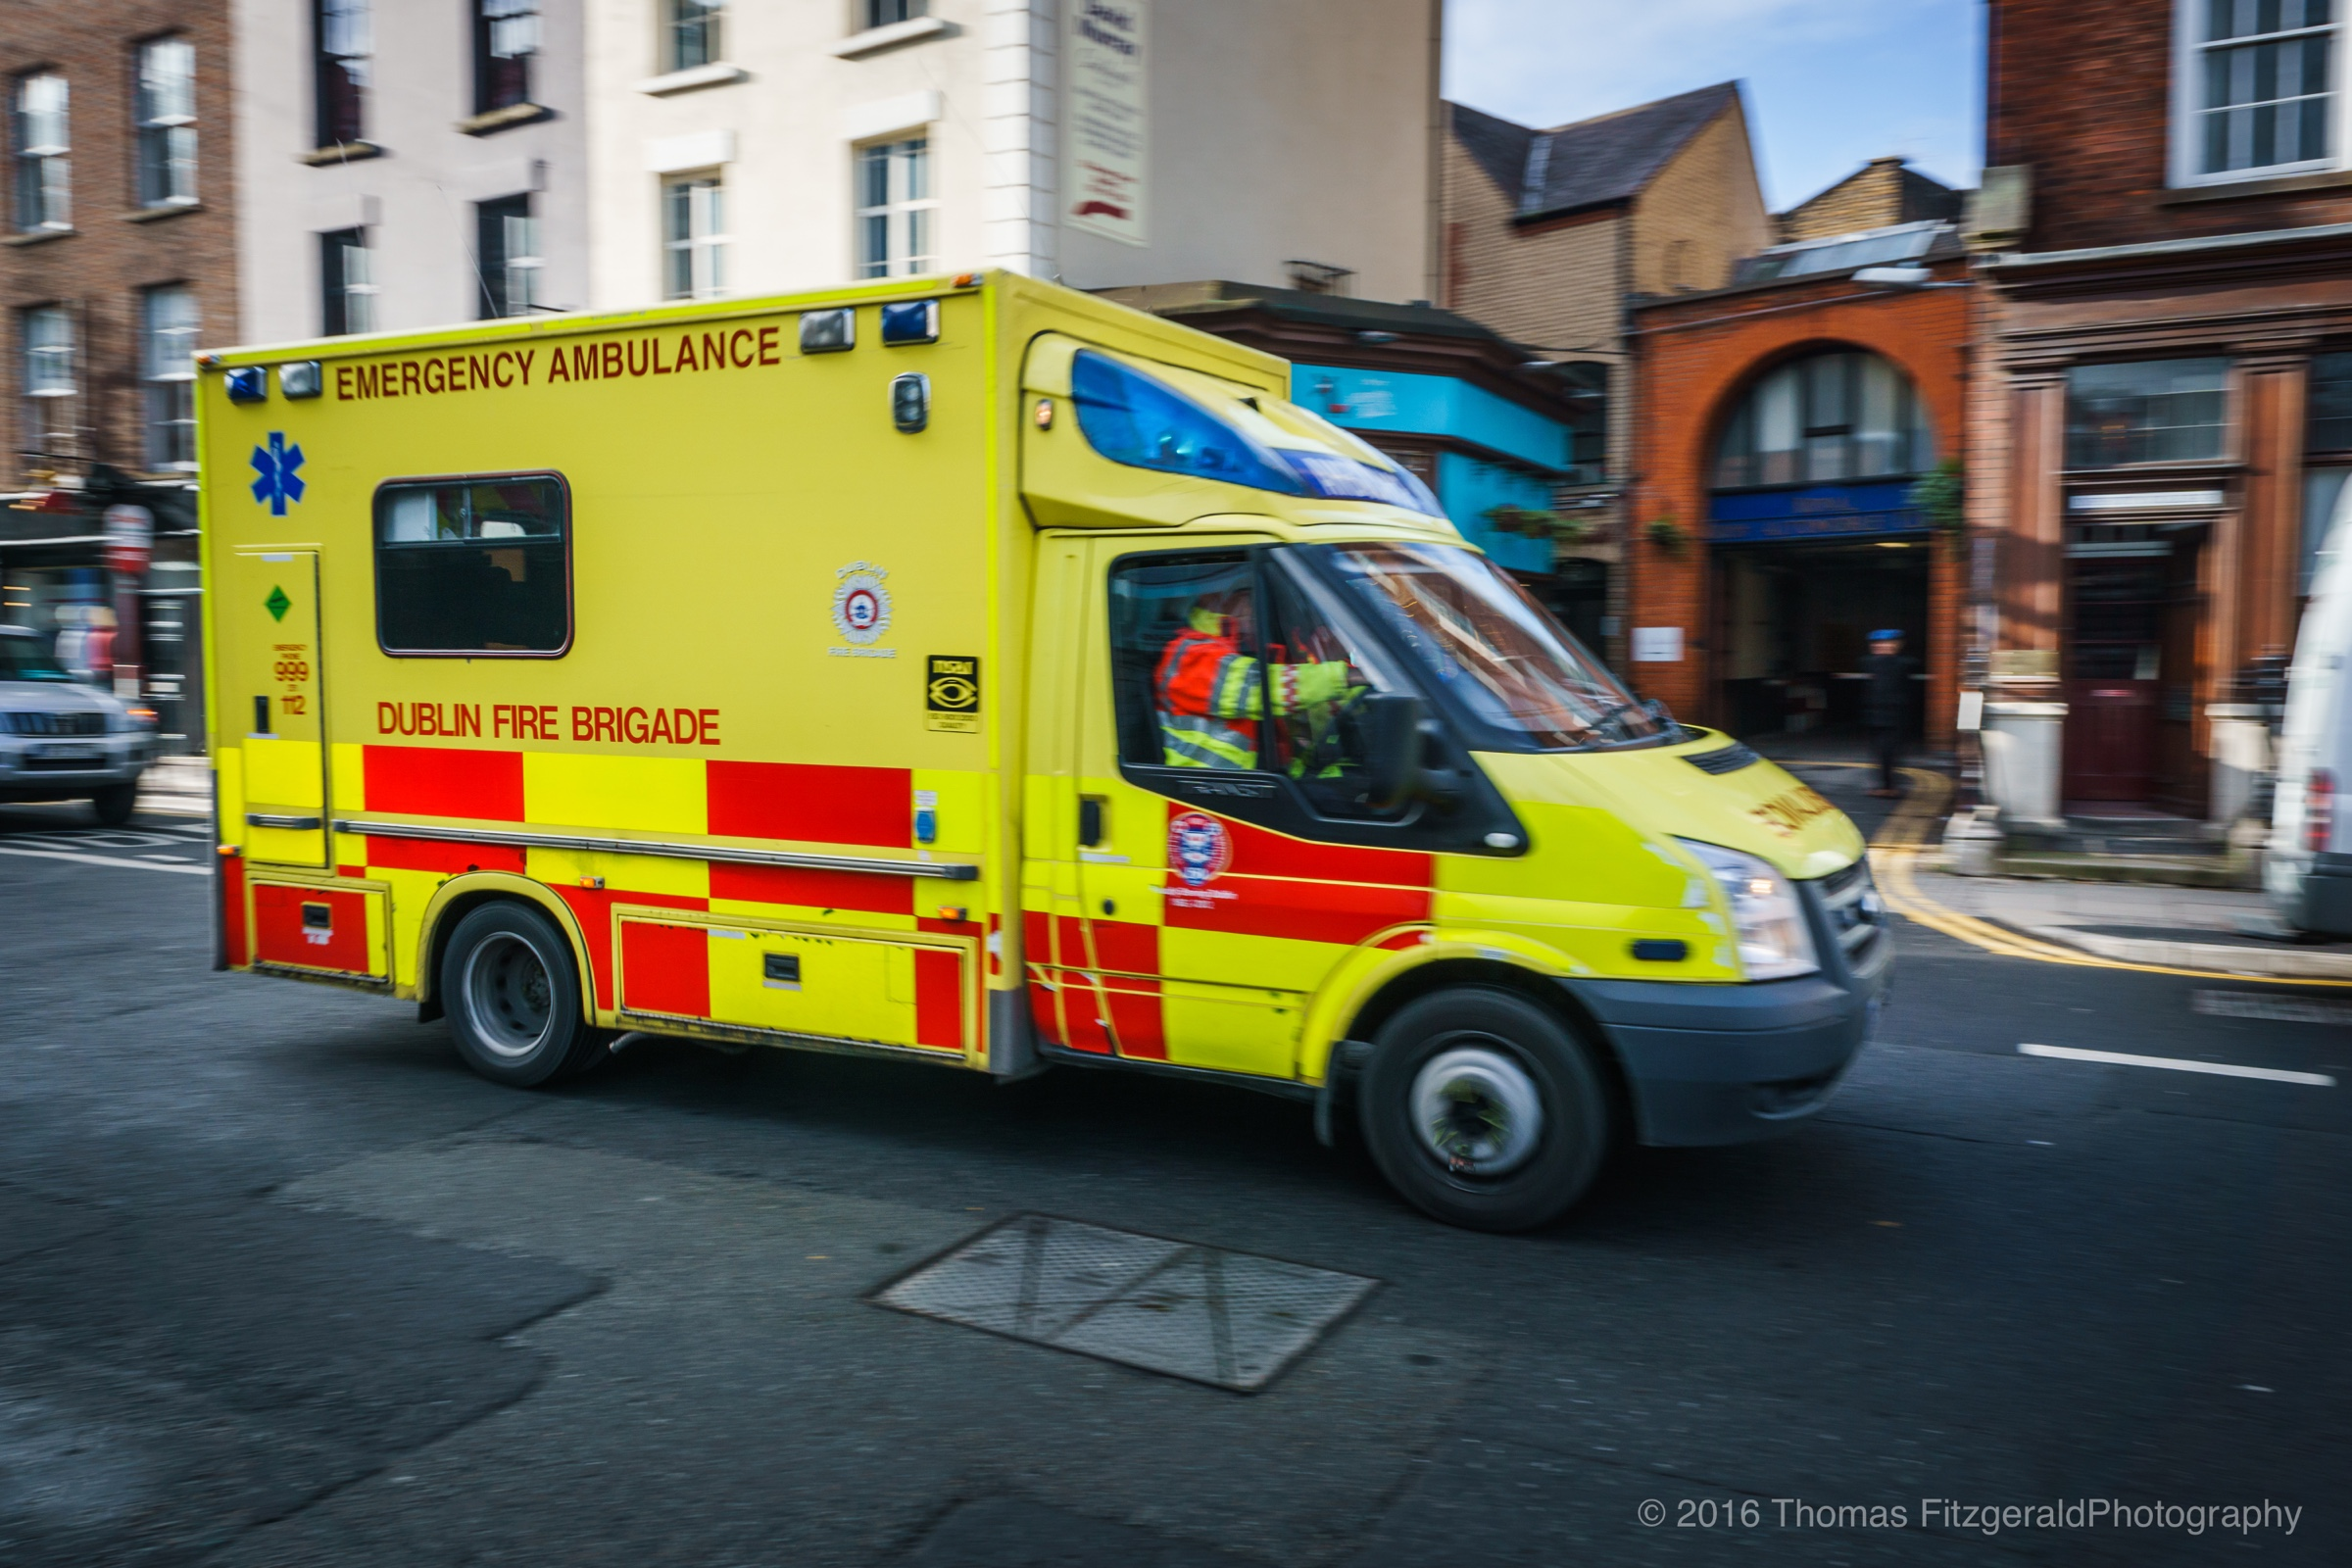 Unnecessary Dramatic Ambulance Shot added purely for effect!